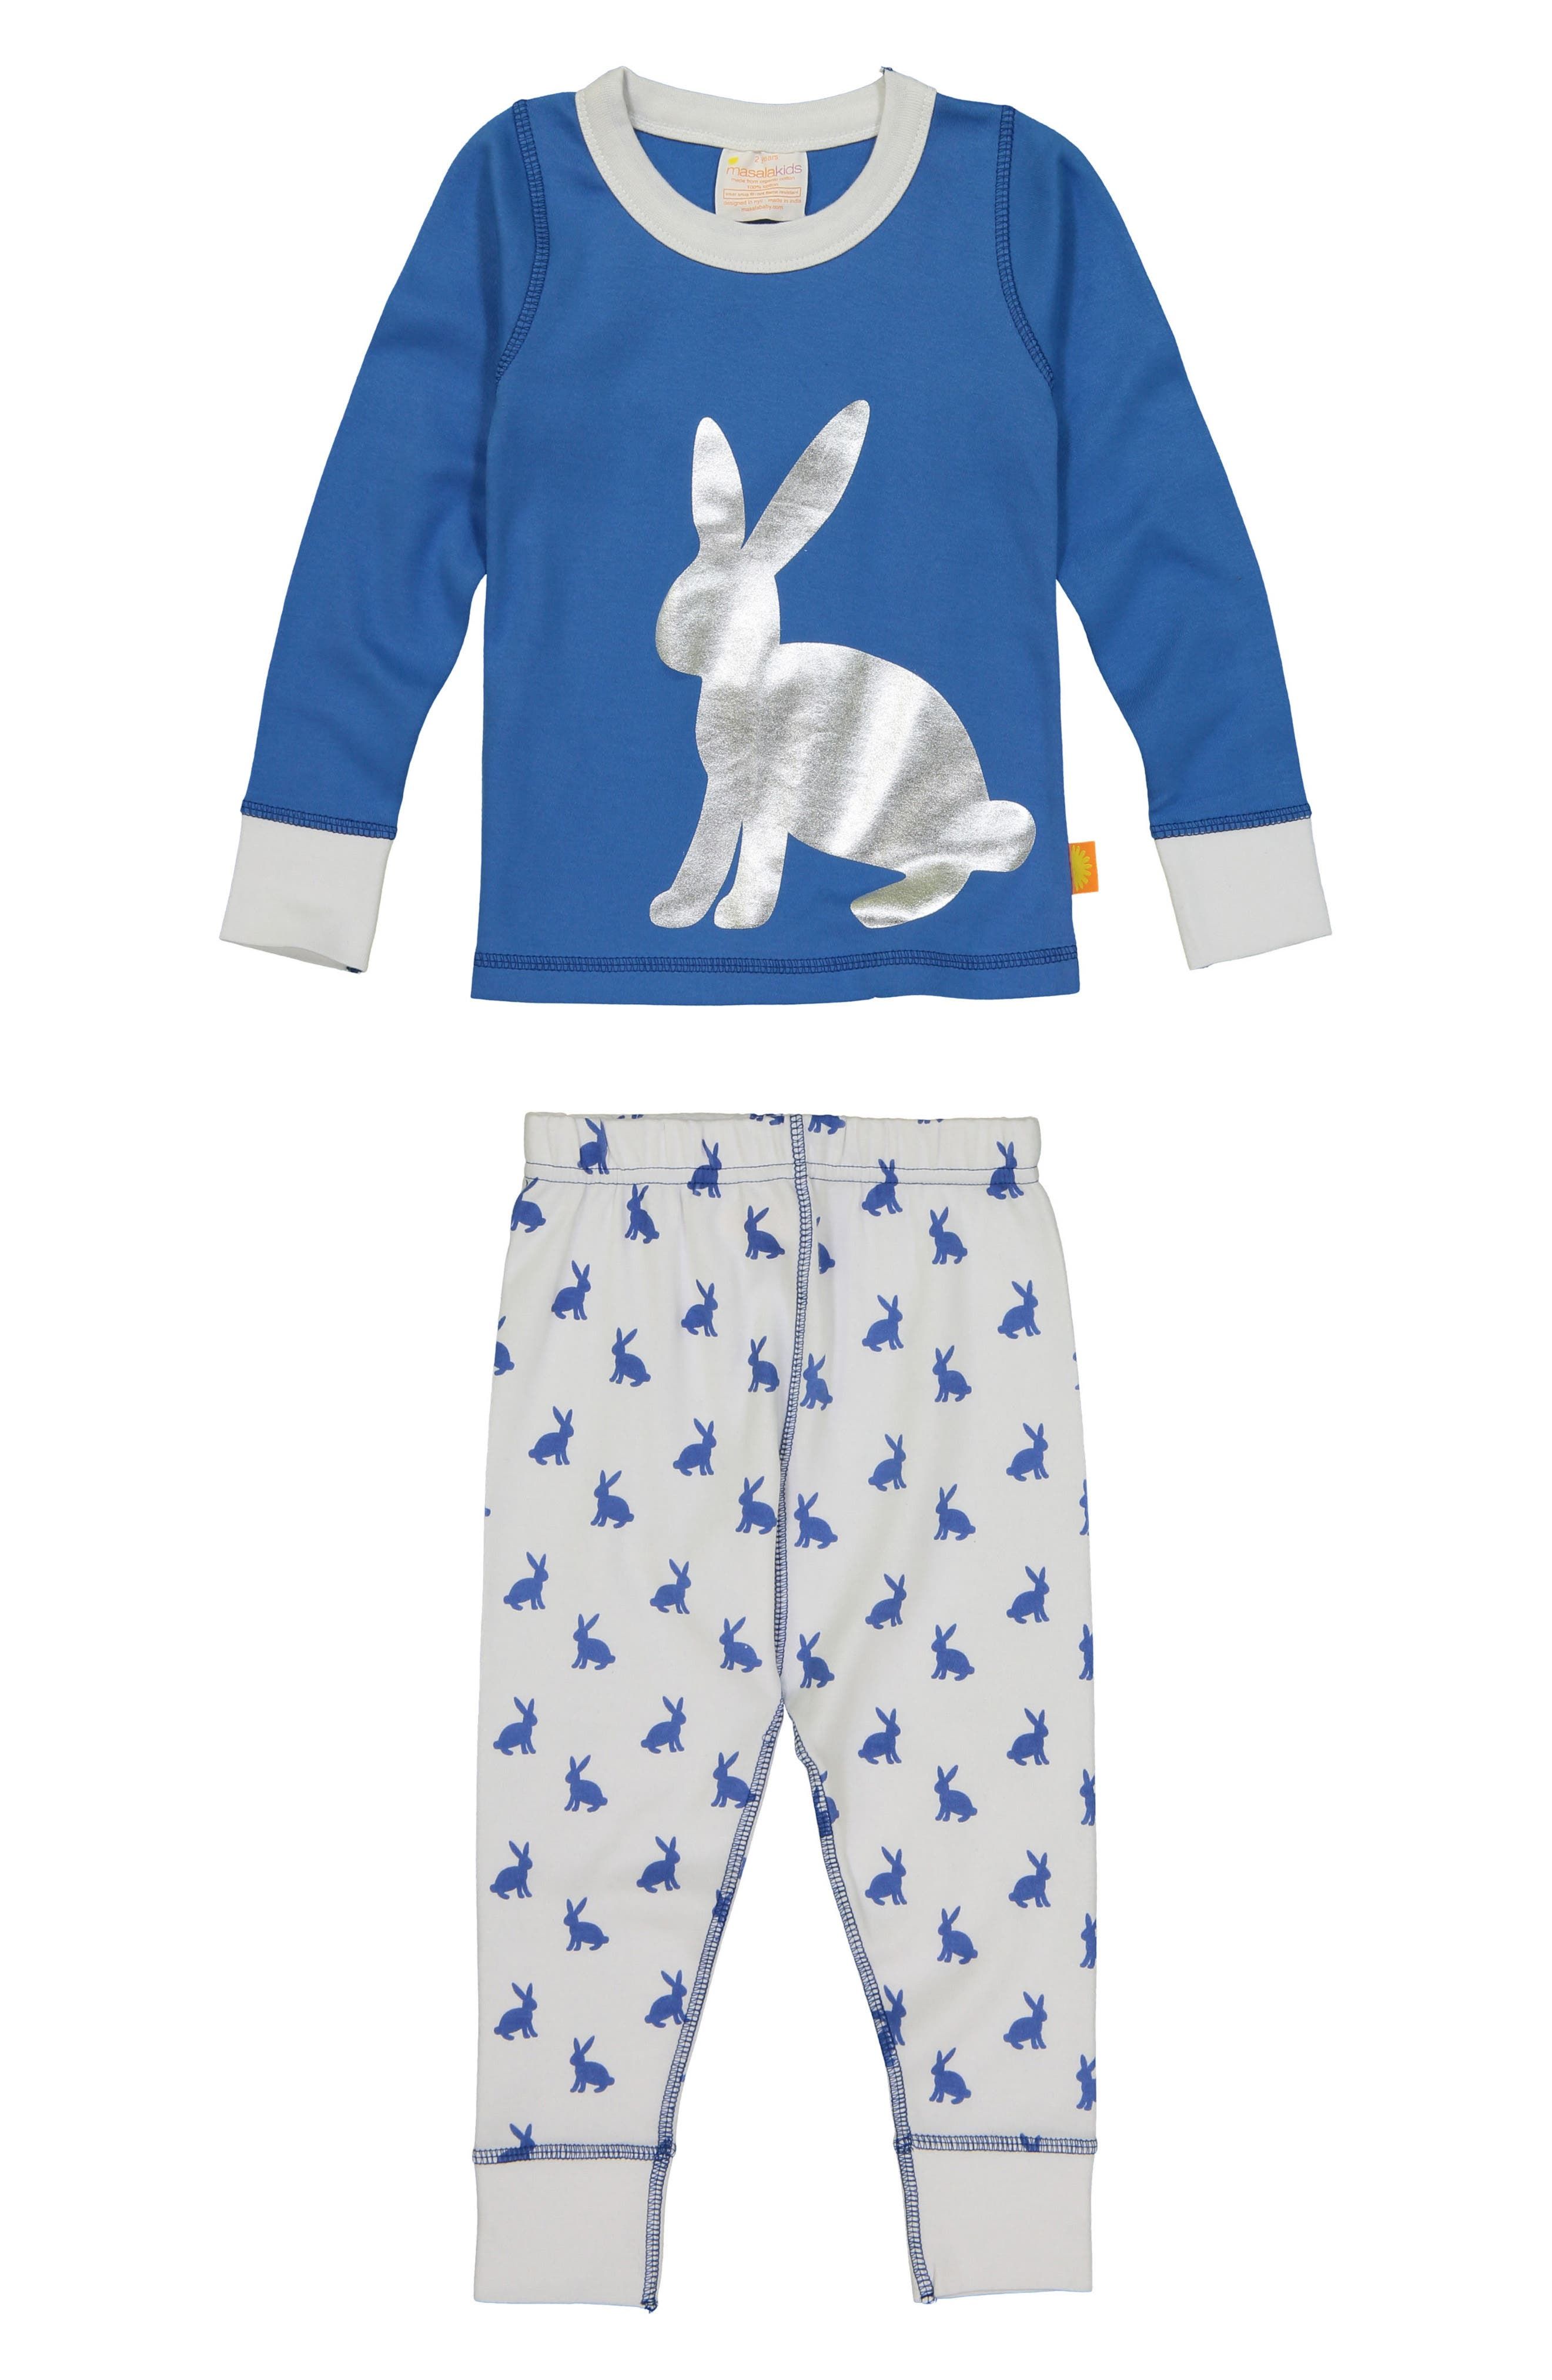 Bunny Hop Fitted Two-Piece Pajamas,                             Main thumbnail 1, color,                             400